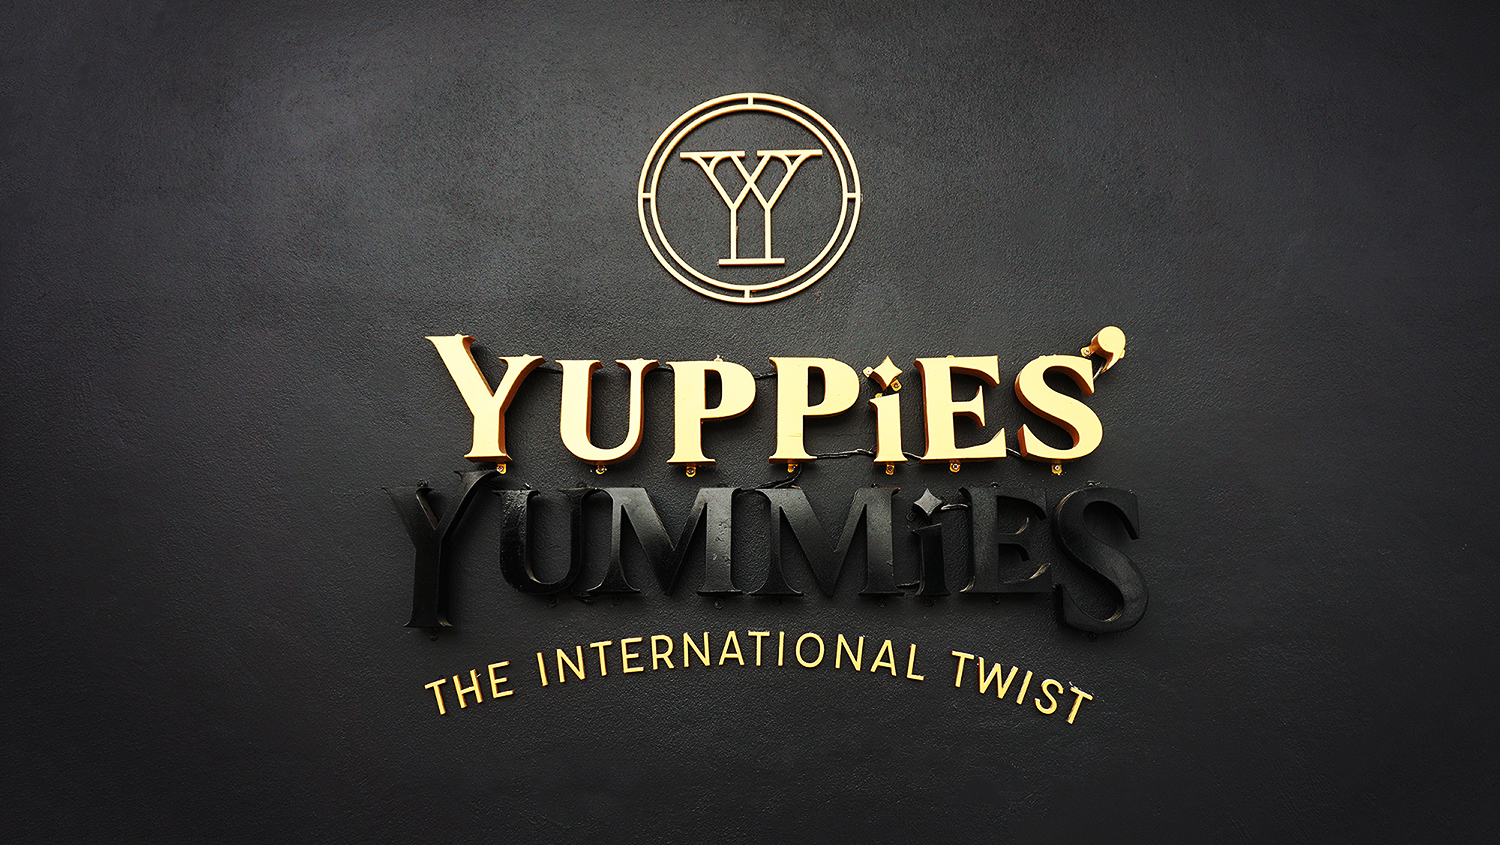 Yuppies Yummies 2